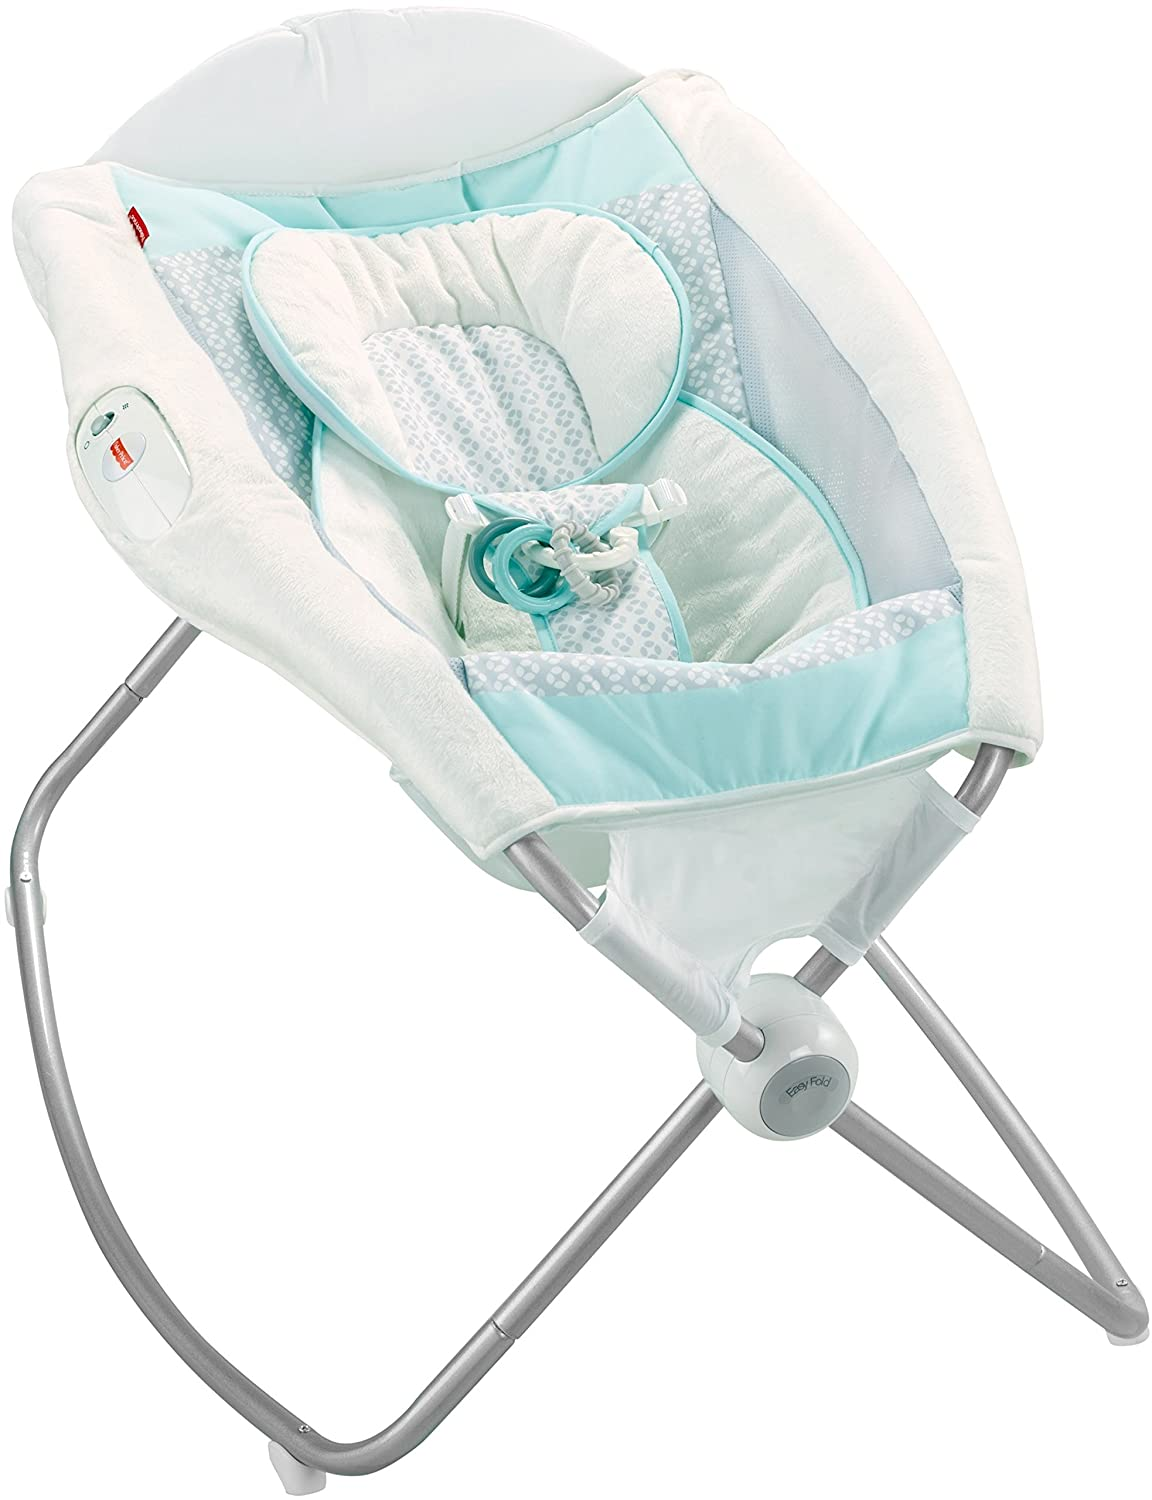 Fisher-Price Deluxe Rock 'n Play Sleeper, Moonlight Meadow Fisher Price CHX77